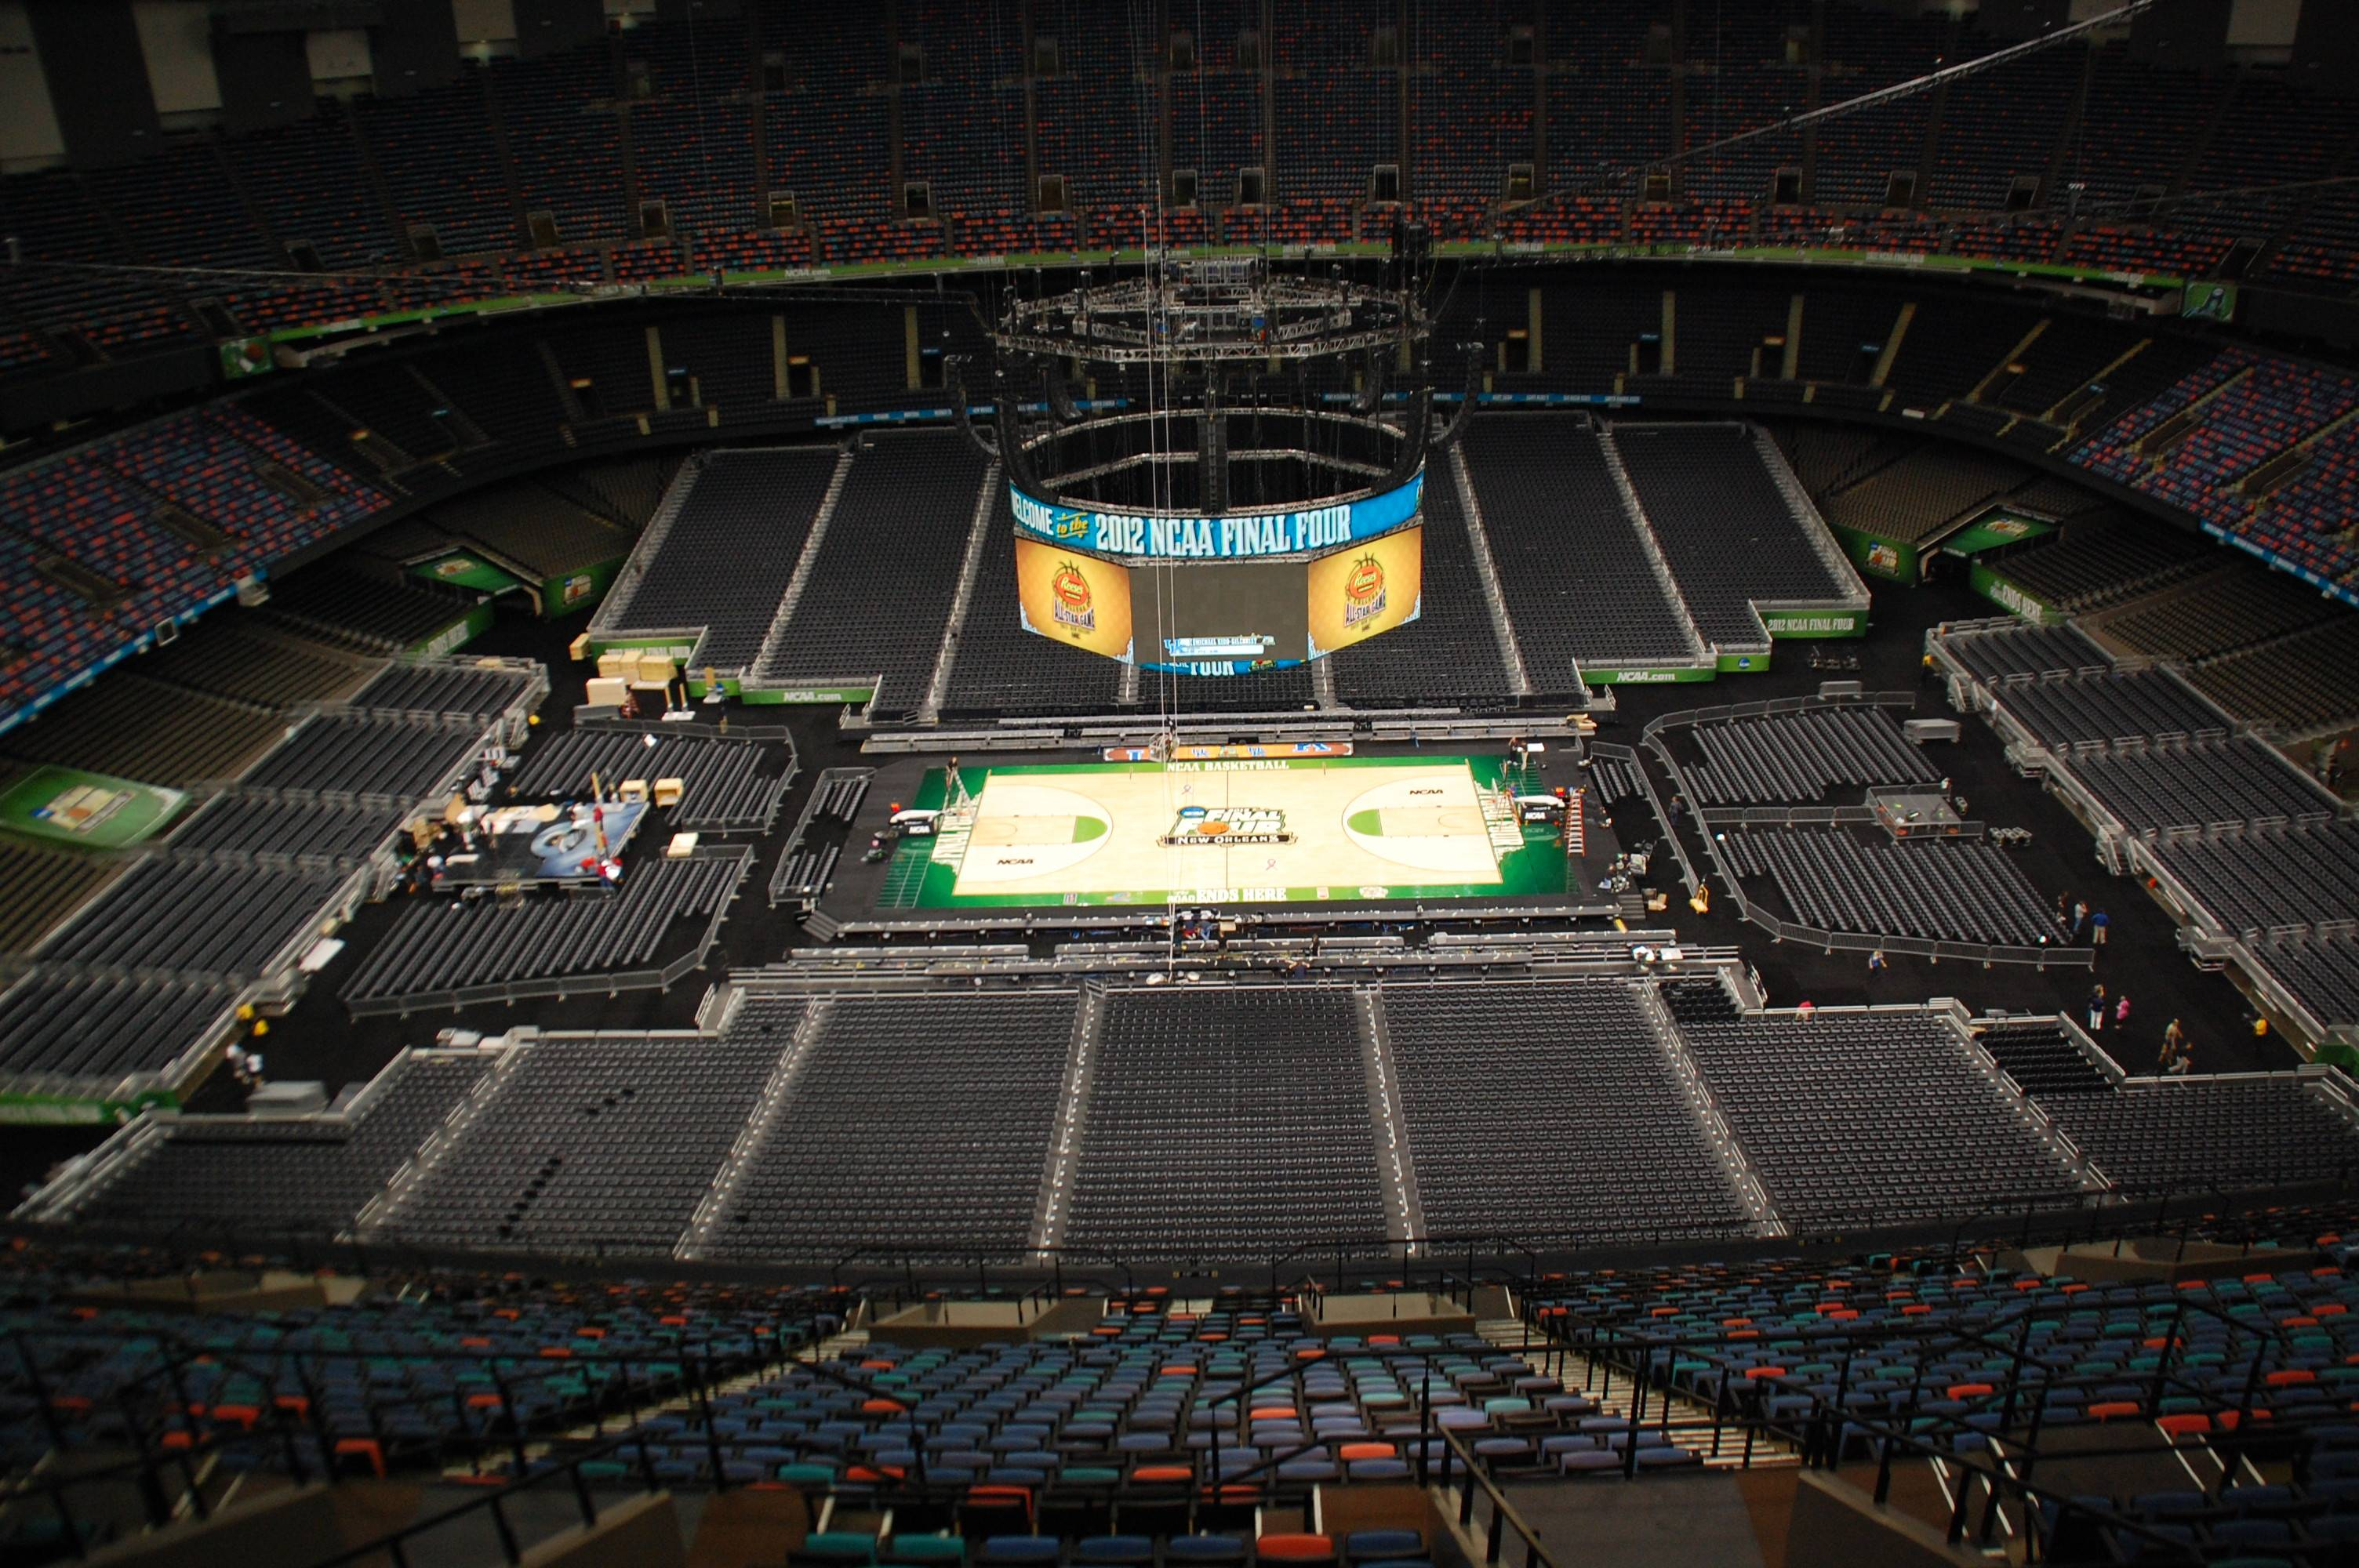 File Superdome Final Four Jpg Wikimedia Commons